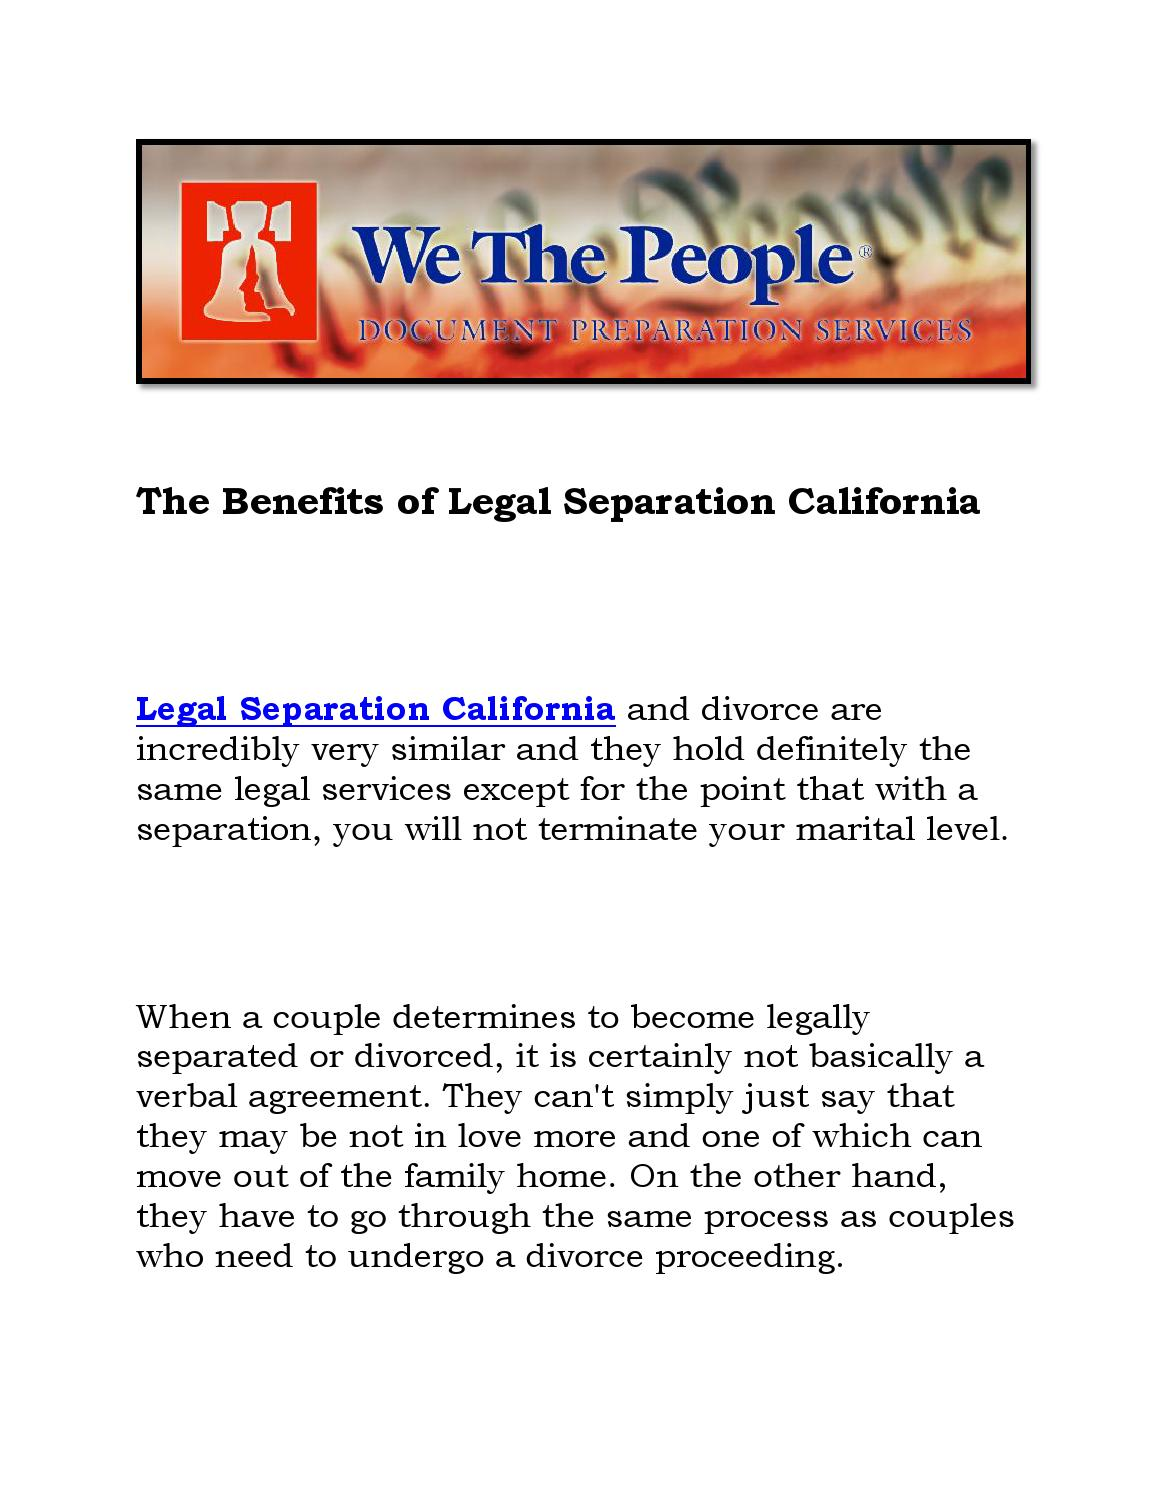 California legally separated dating